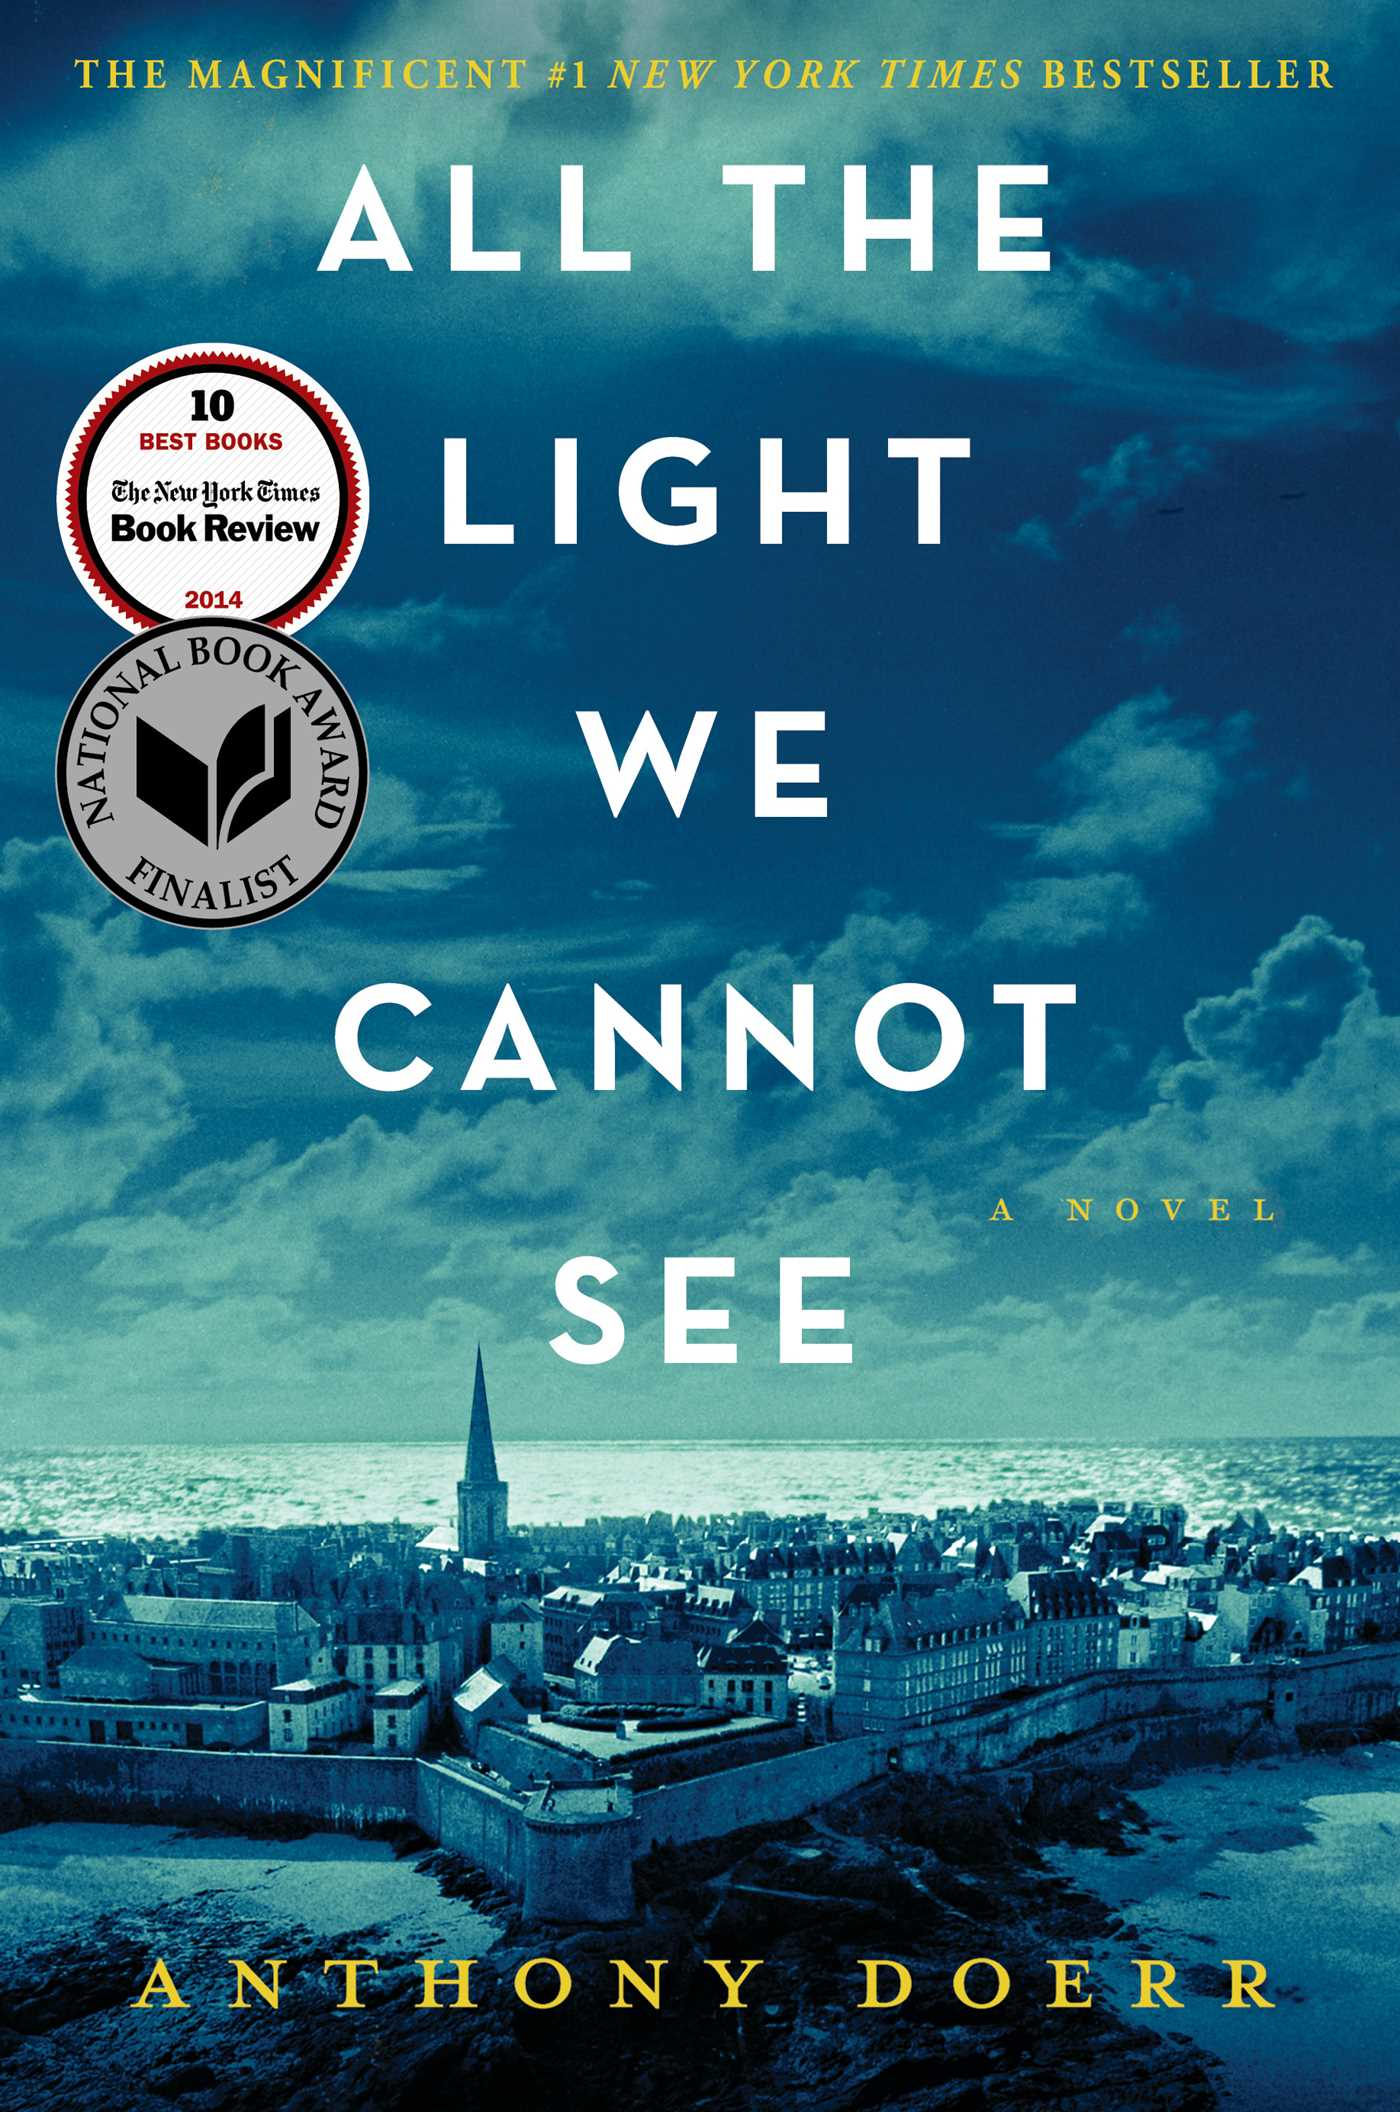 ALL THE LIGHT WE CANNOT SEE by Anthony Doerr is a Historical Fiction Landmark Title on Book Country.